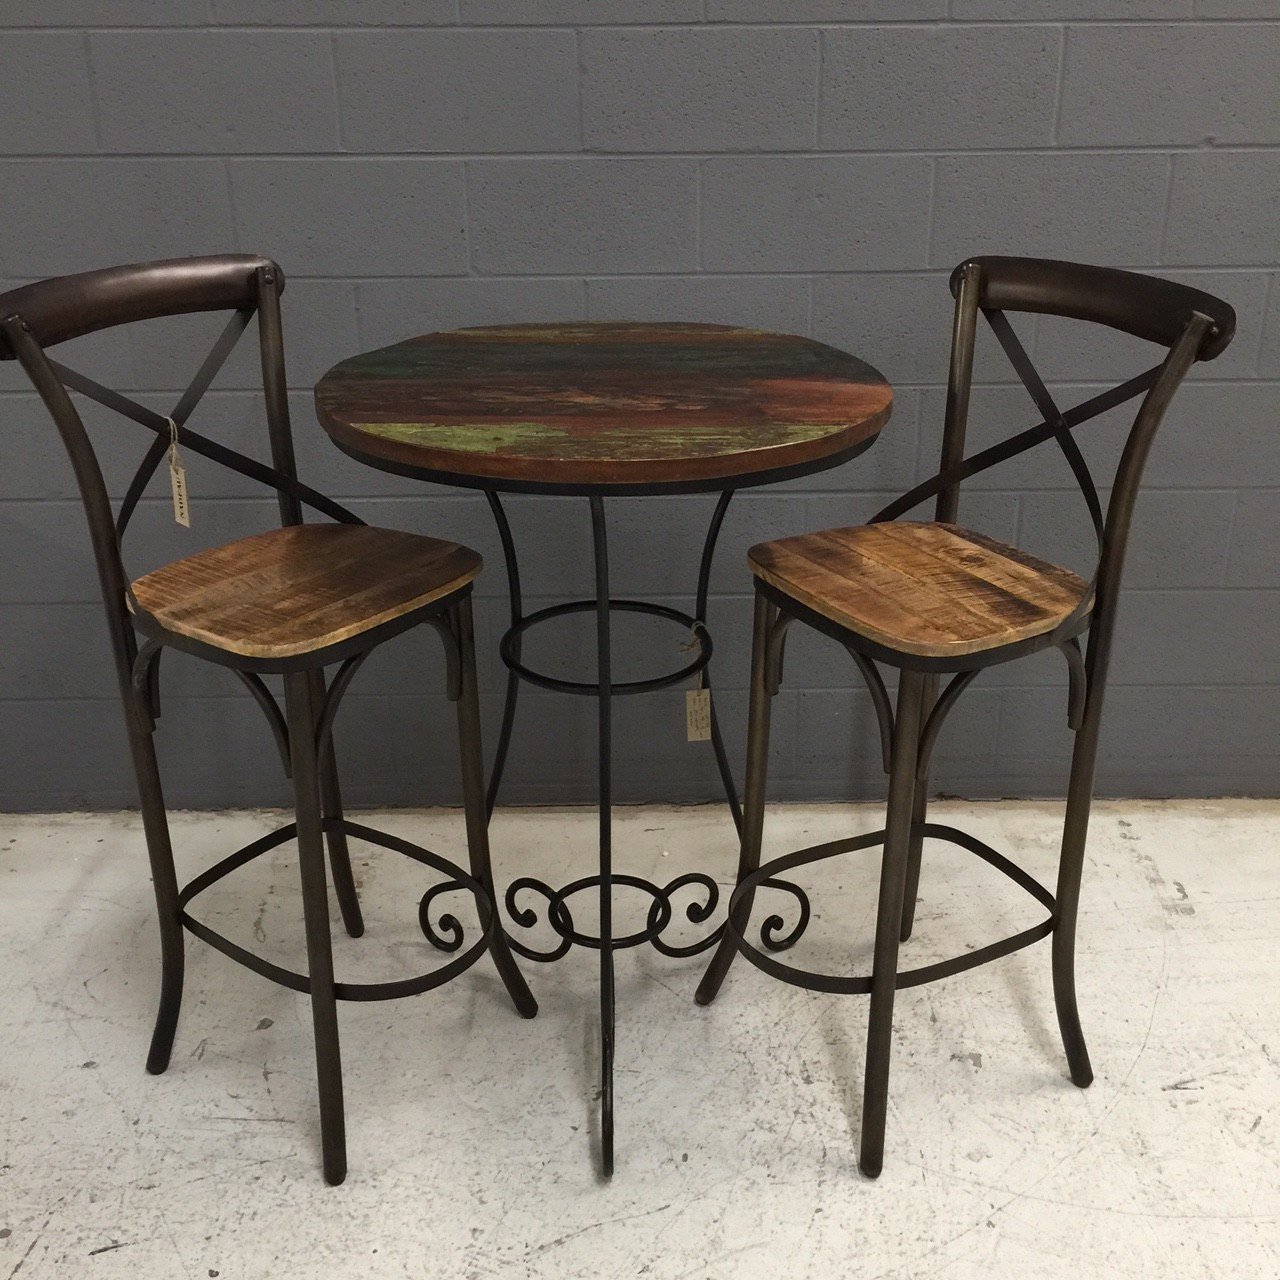 Tall iron and wood table nadeau nashville for Dining table nashville tn